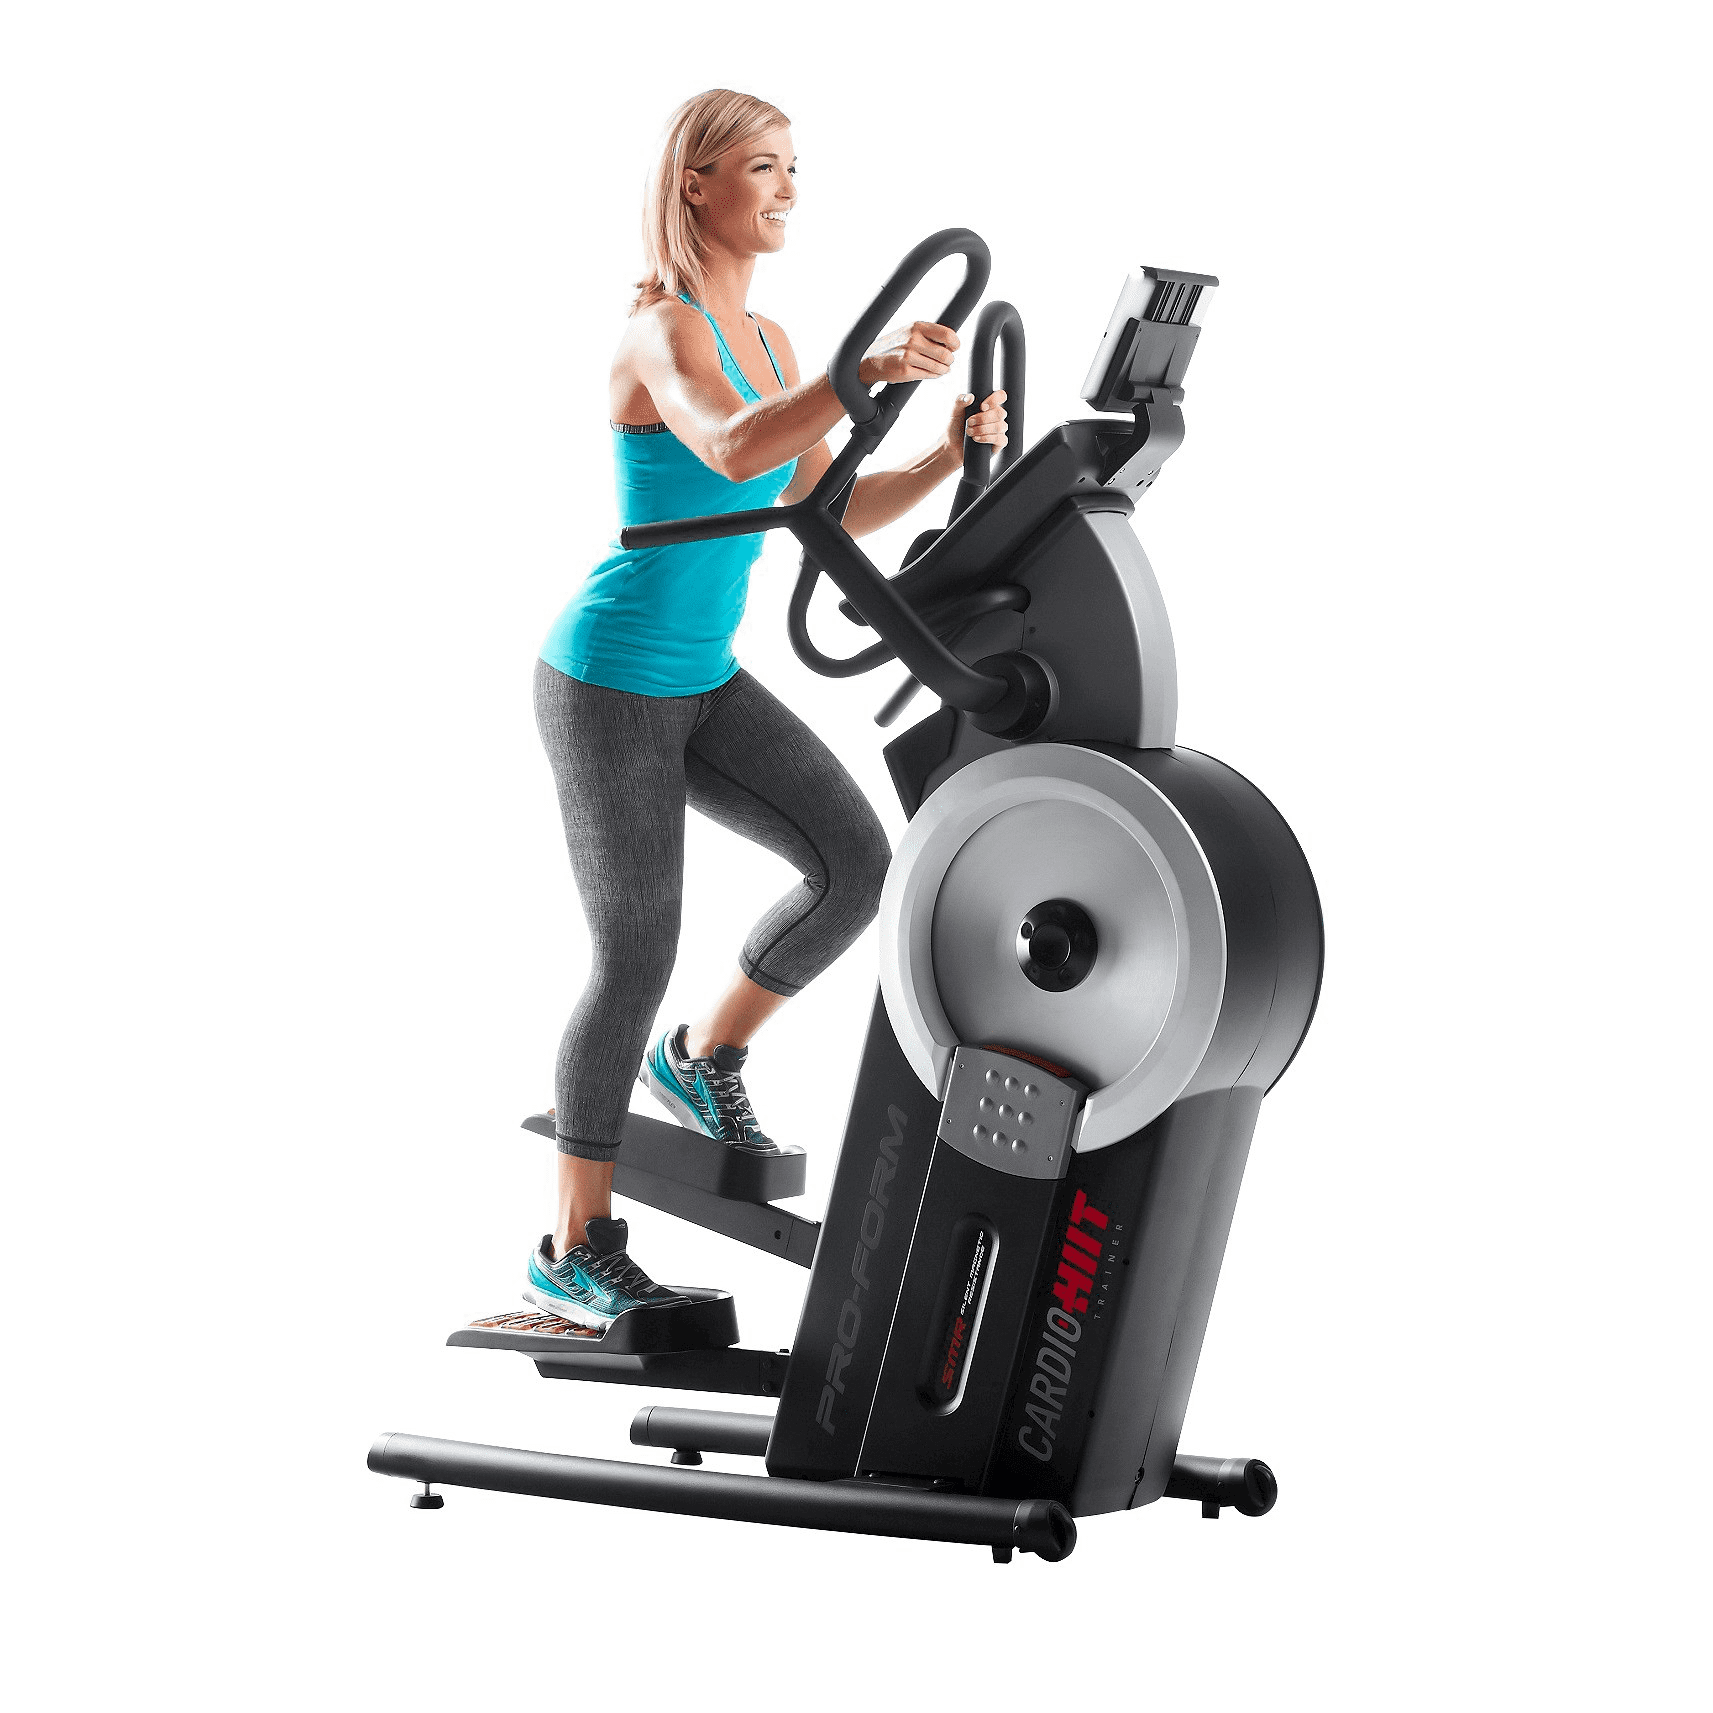 Proform CardioHIIT Trainer (usually around $1000 so 20% off) $799